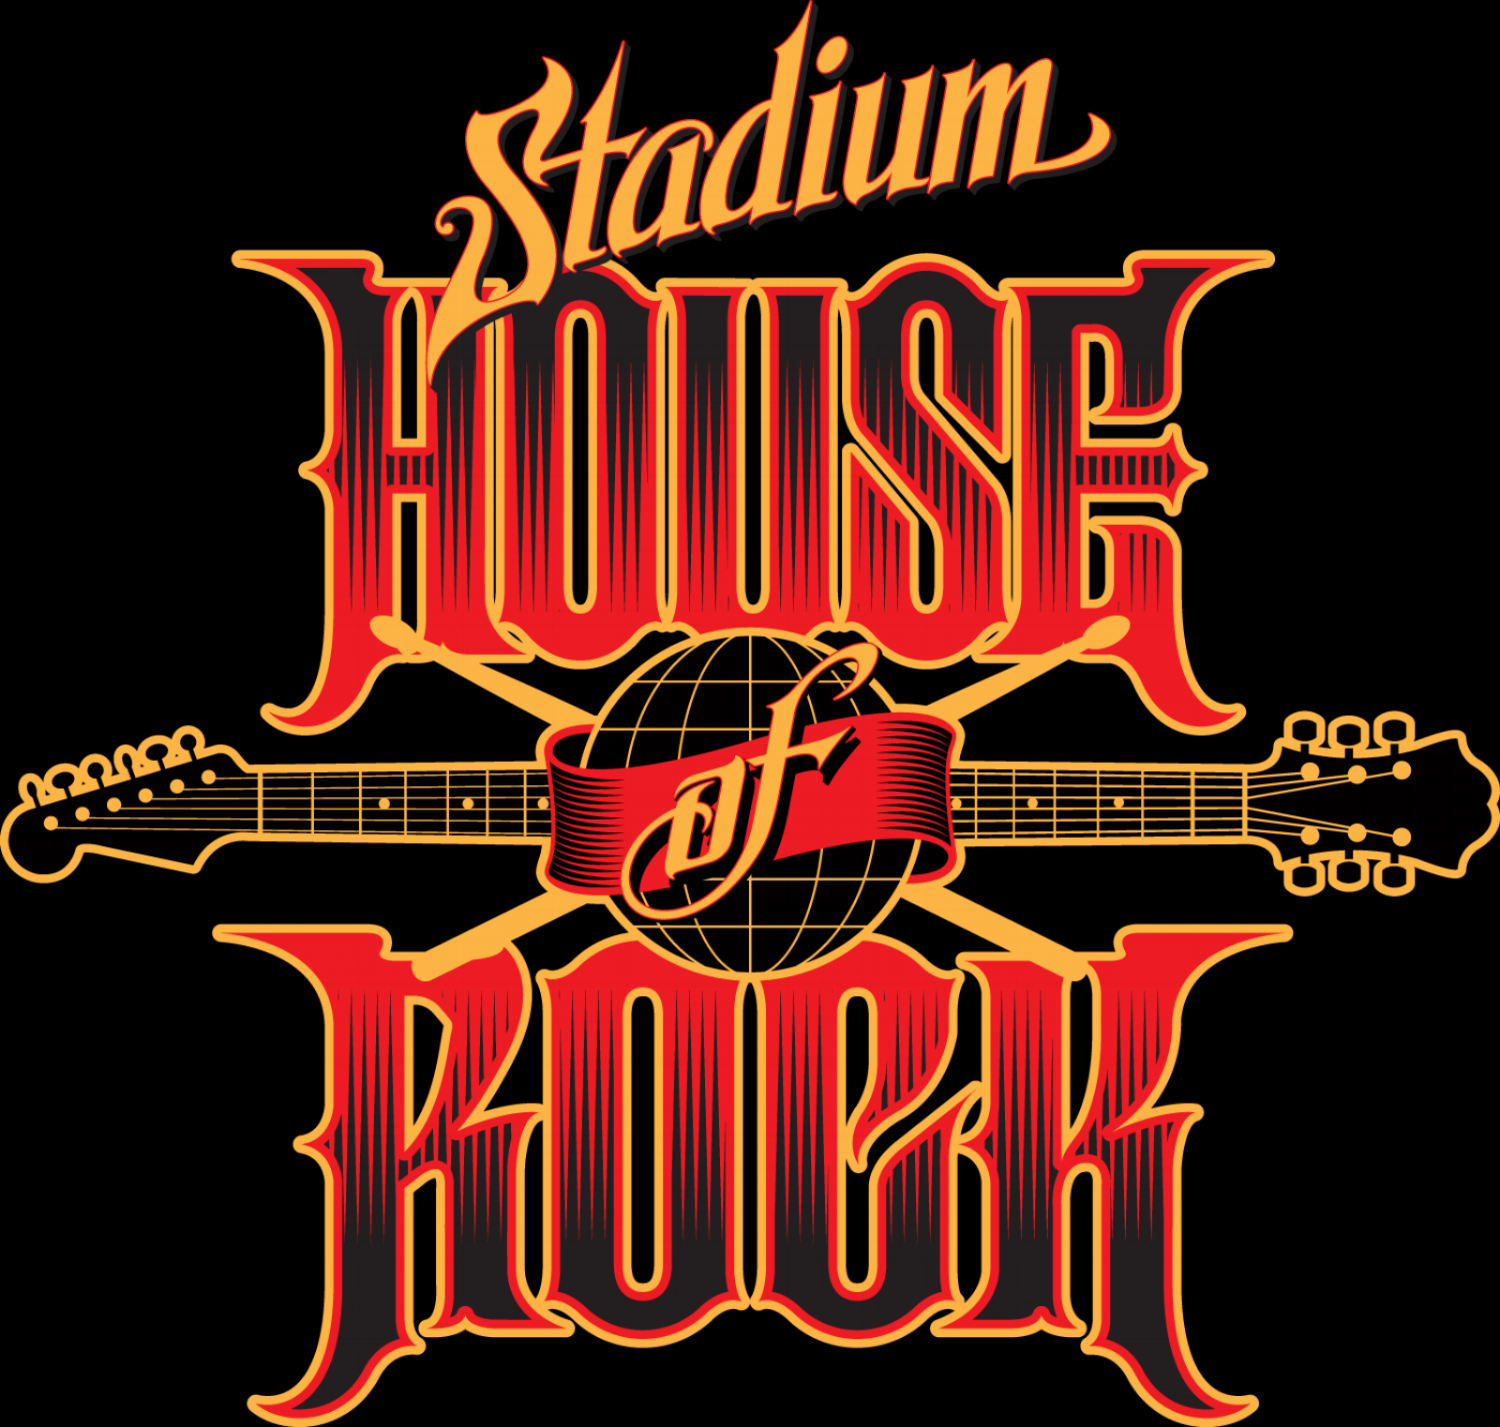 Stadium House of Rock